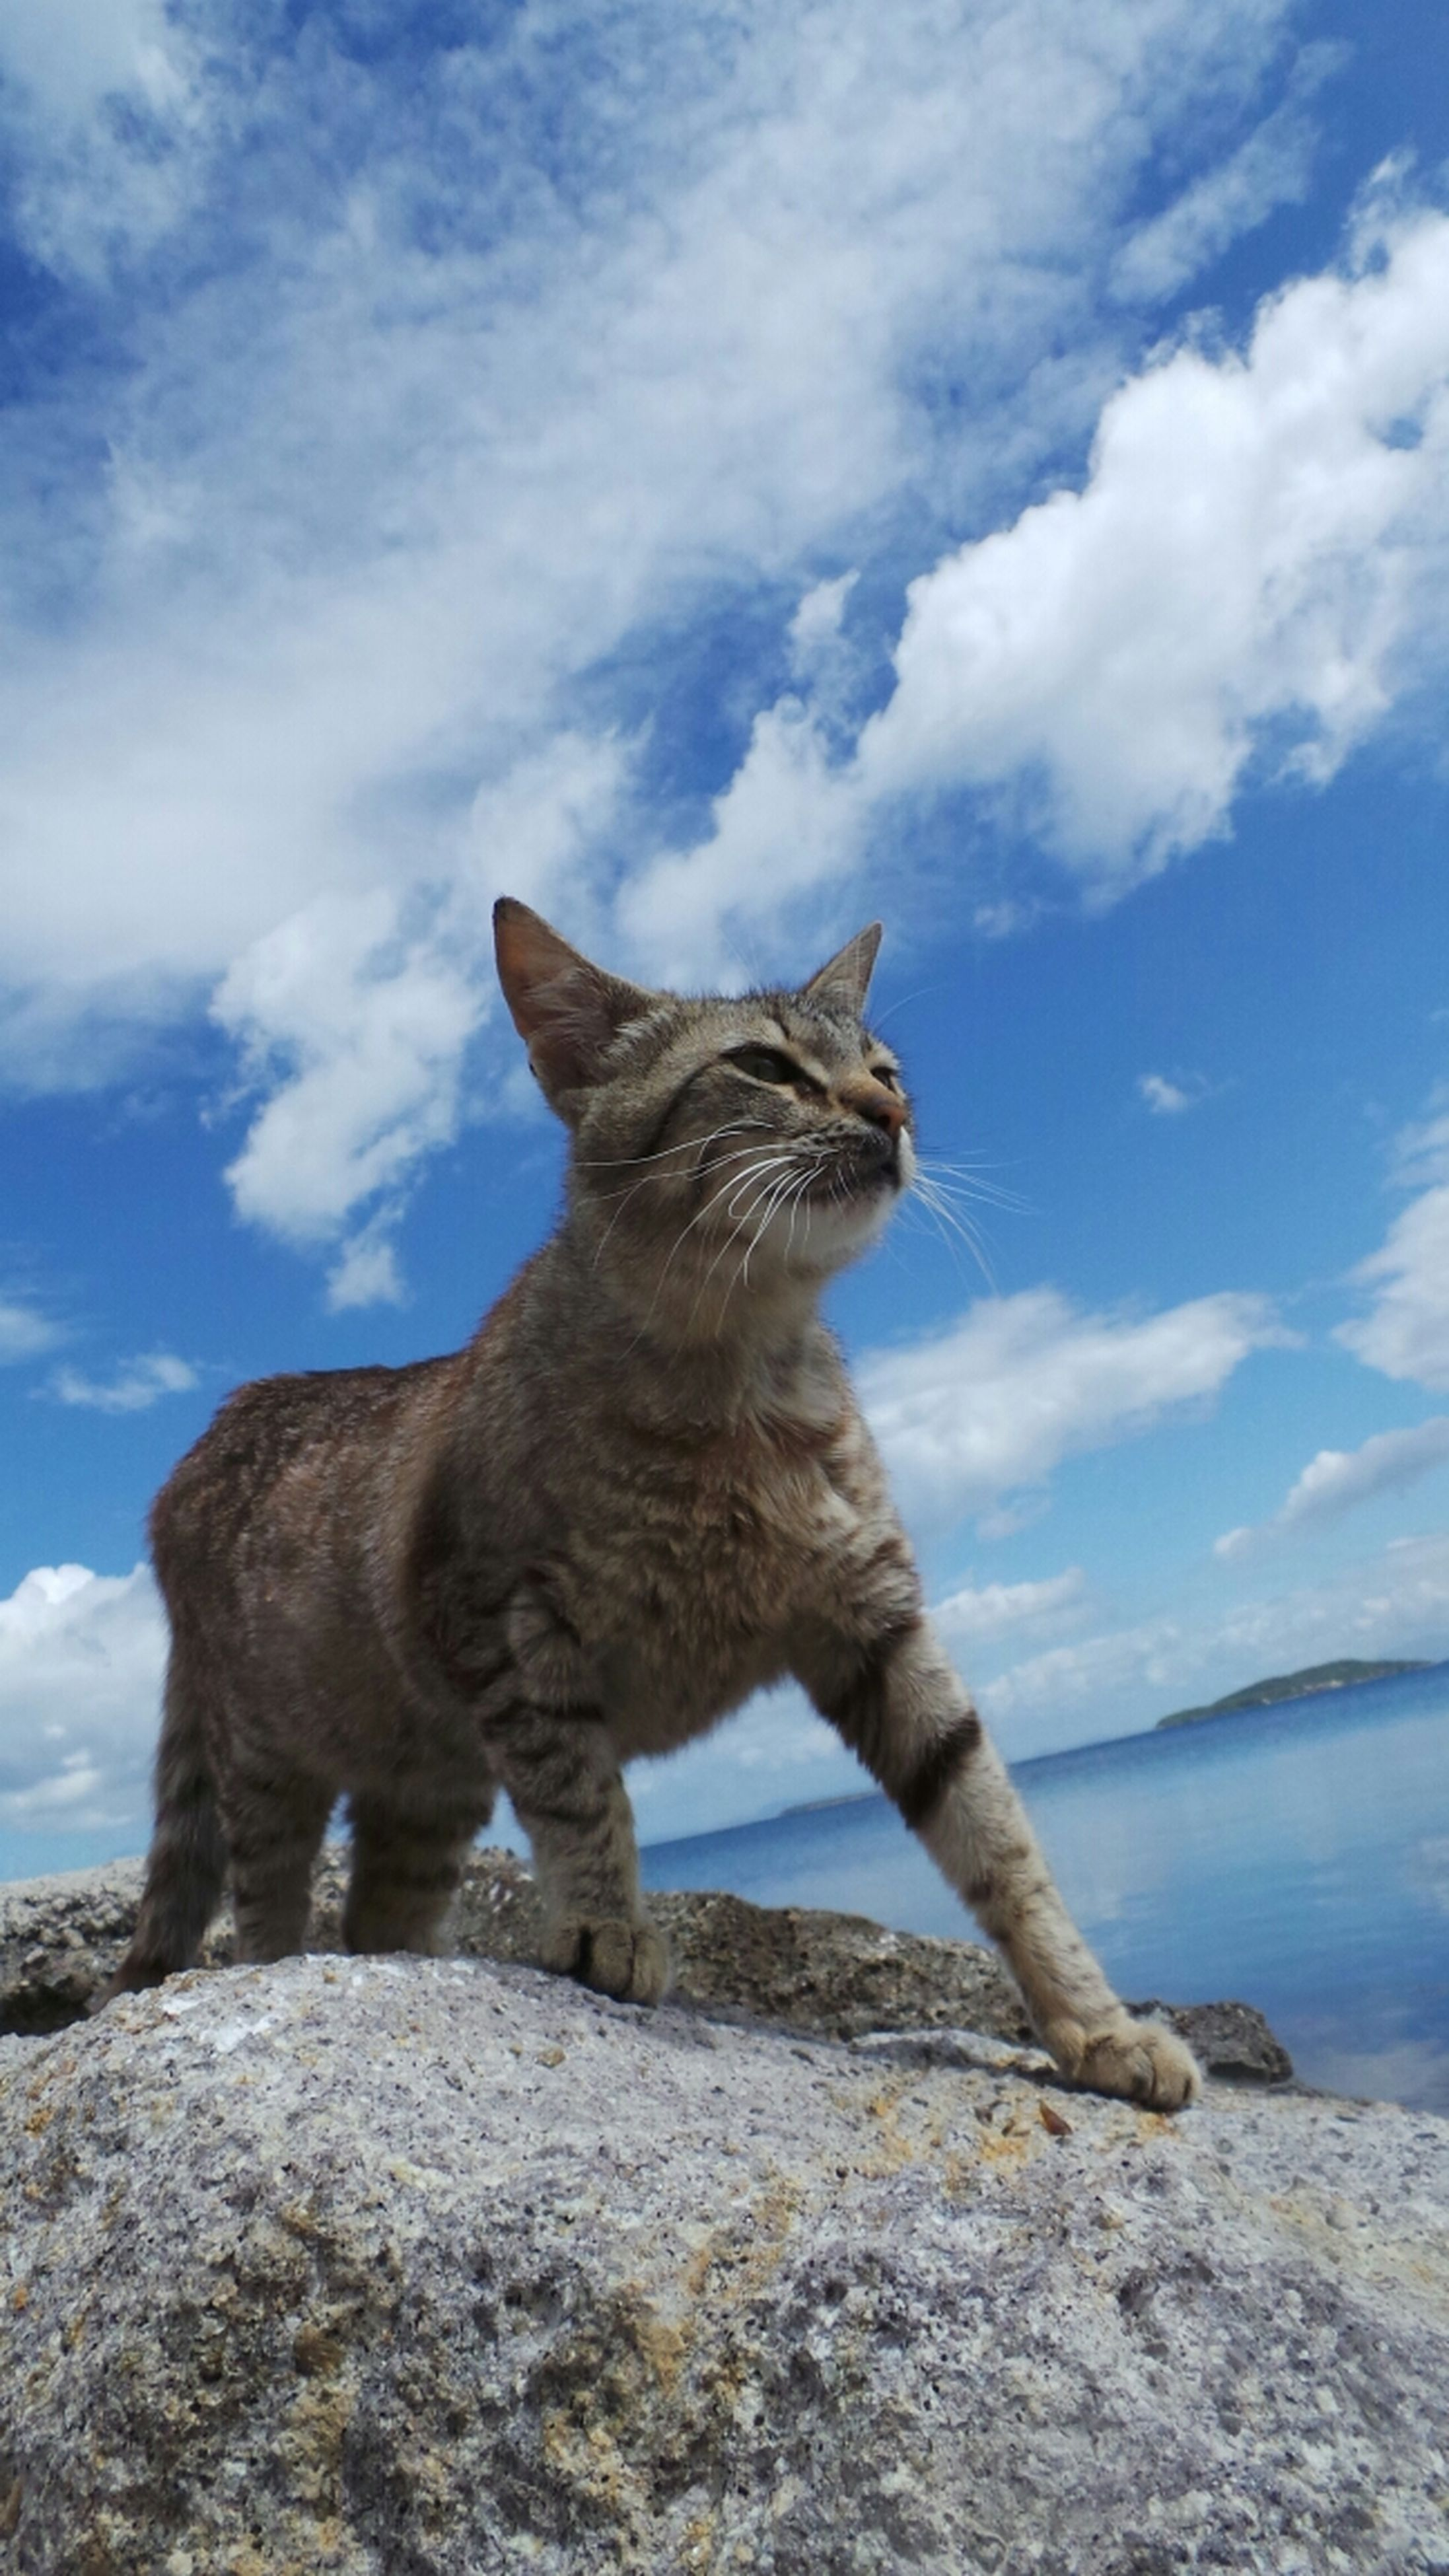 one animal, animal themes, sky, mammal, rock - object, full length, low angle view, cloud - sky, nature, standing, cloud, day, domestic animals, outdoors, no people, rock, sitting, wildlife, pets, animals in the wild